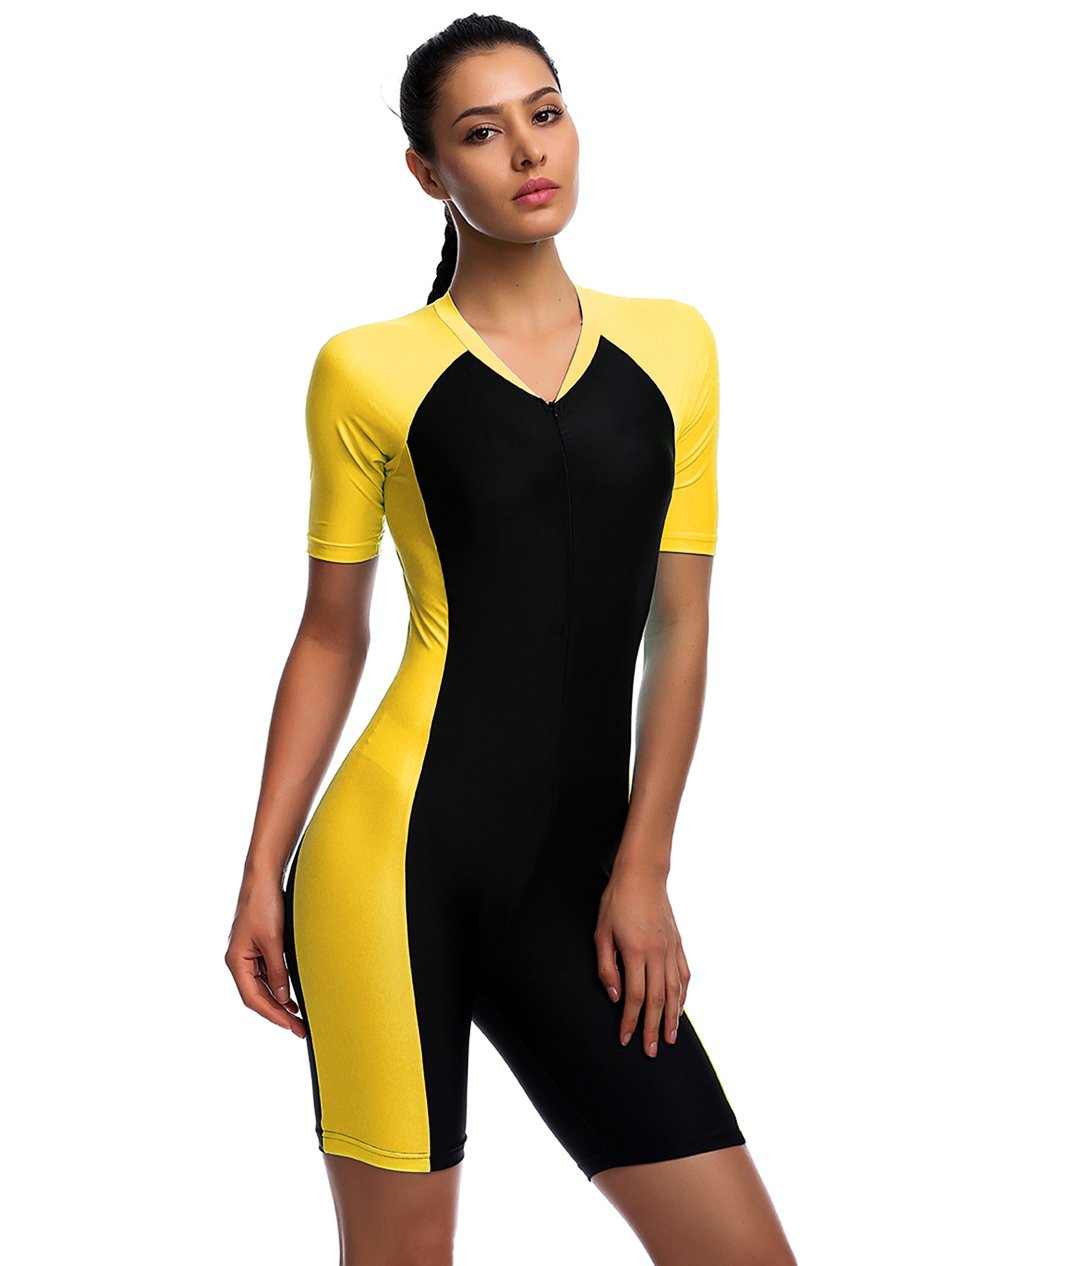 One Piece Swimsuit for Woman Belloo Short-sleeve Surfing Suit Sun Protection, Yellow, 2X-Large